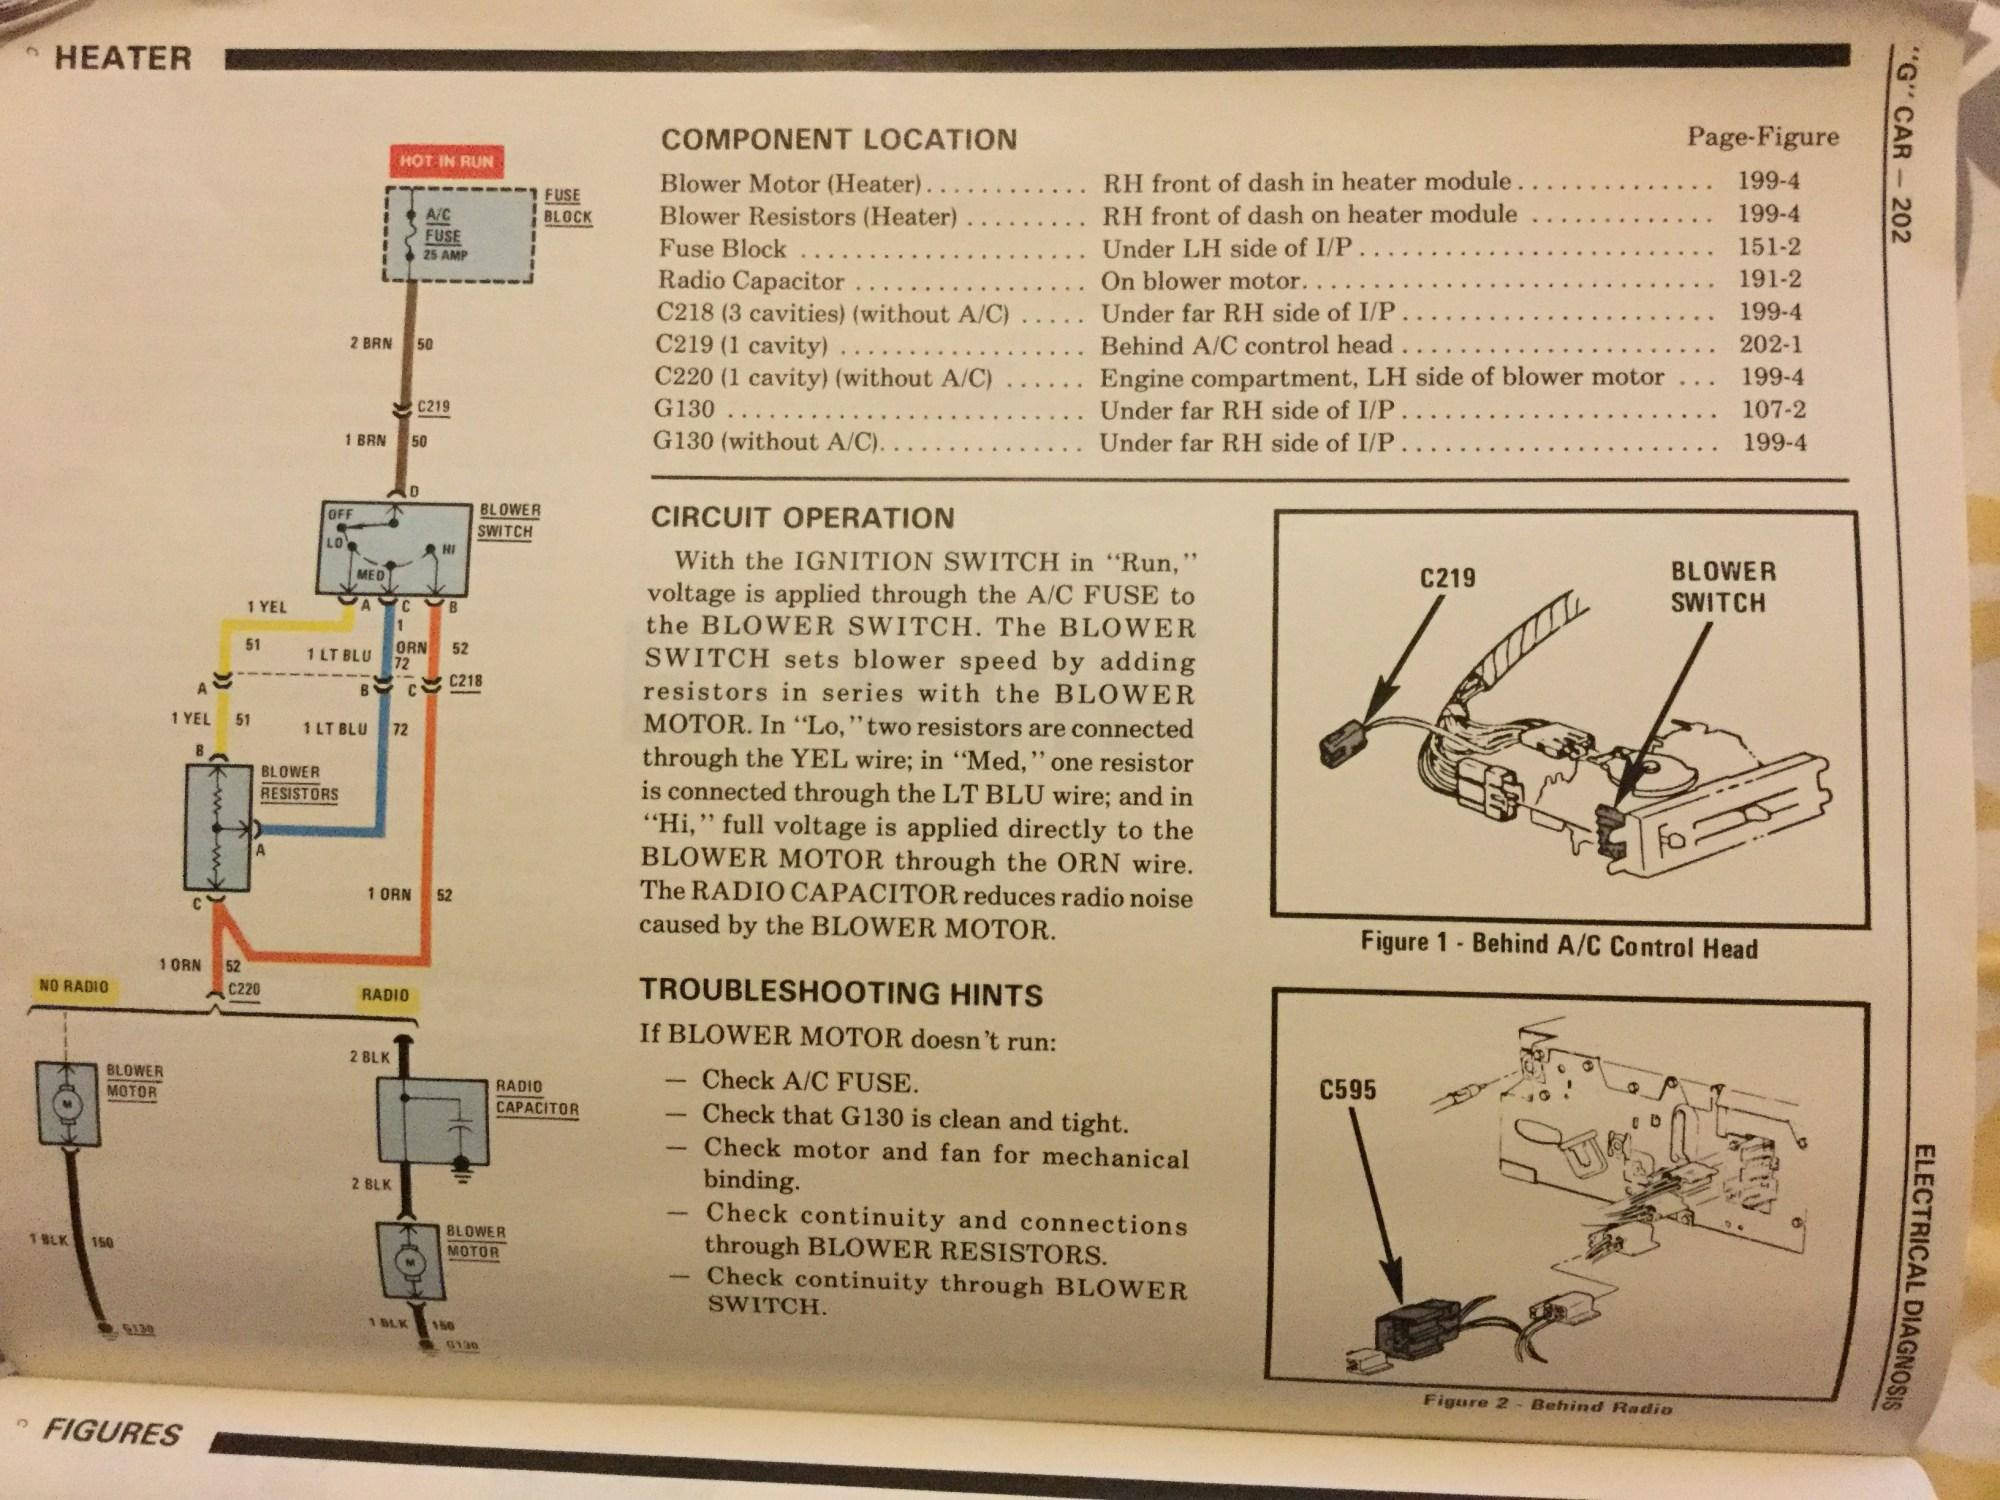 hight resolution of wiring diagram monte carlo fan wiring diagram 1980 monte carlo wiring diagram wiring diagrammonte carlo fan